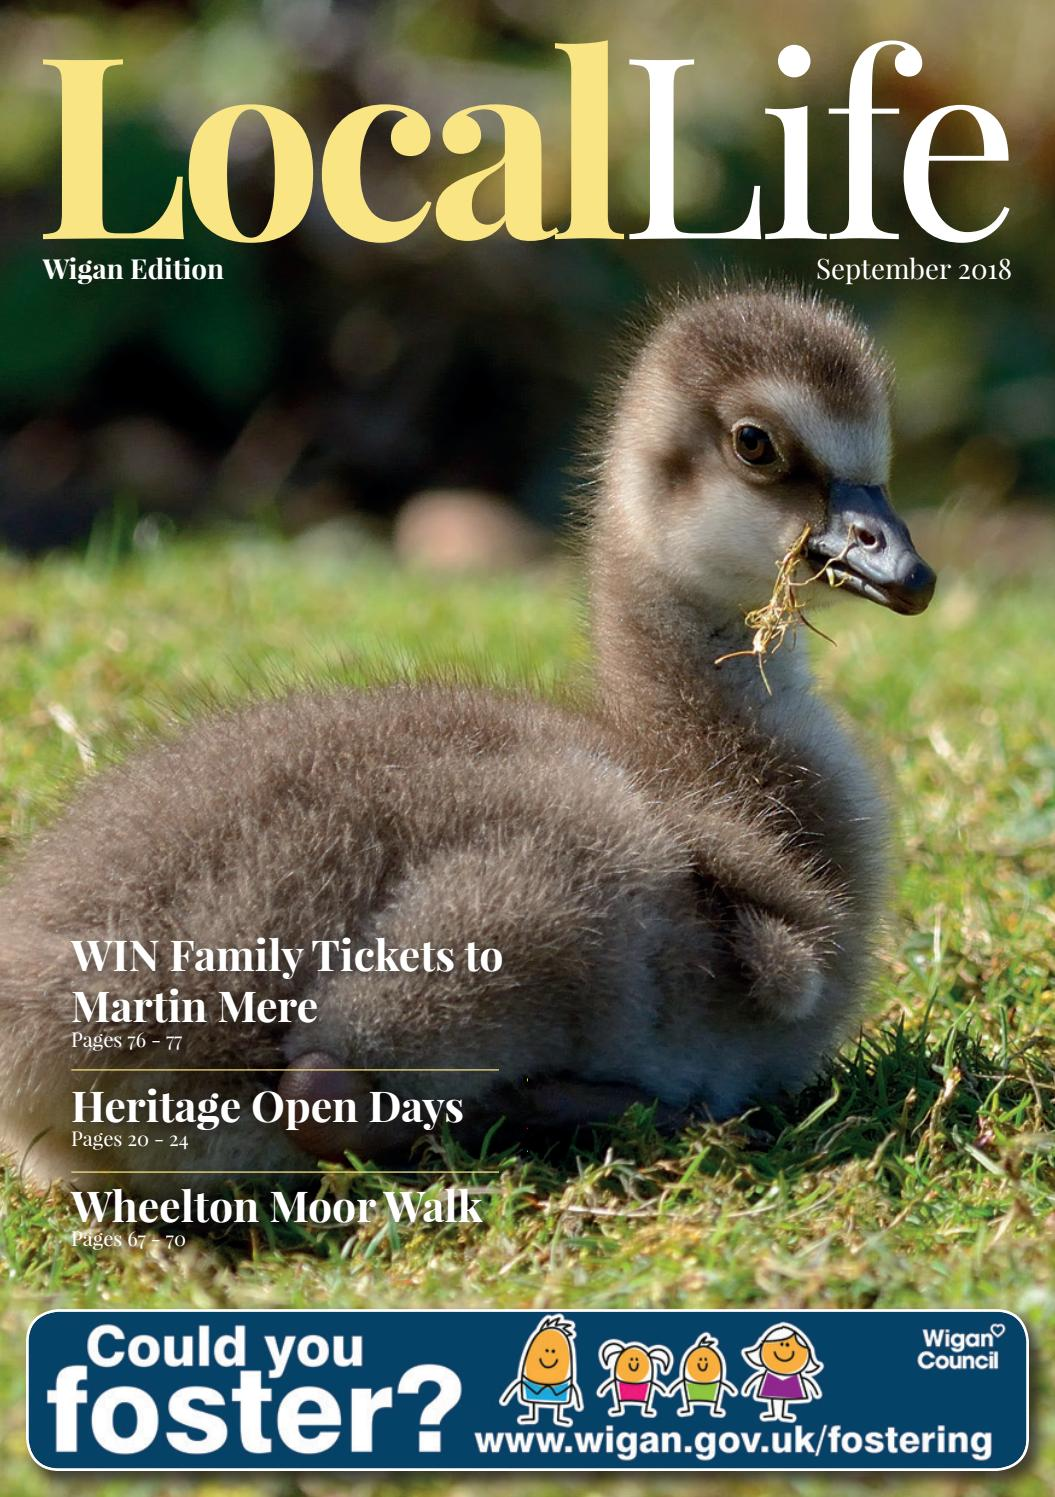 Local Life Wigan September 2018 By 247 Ltd